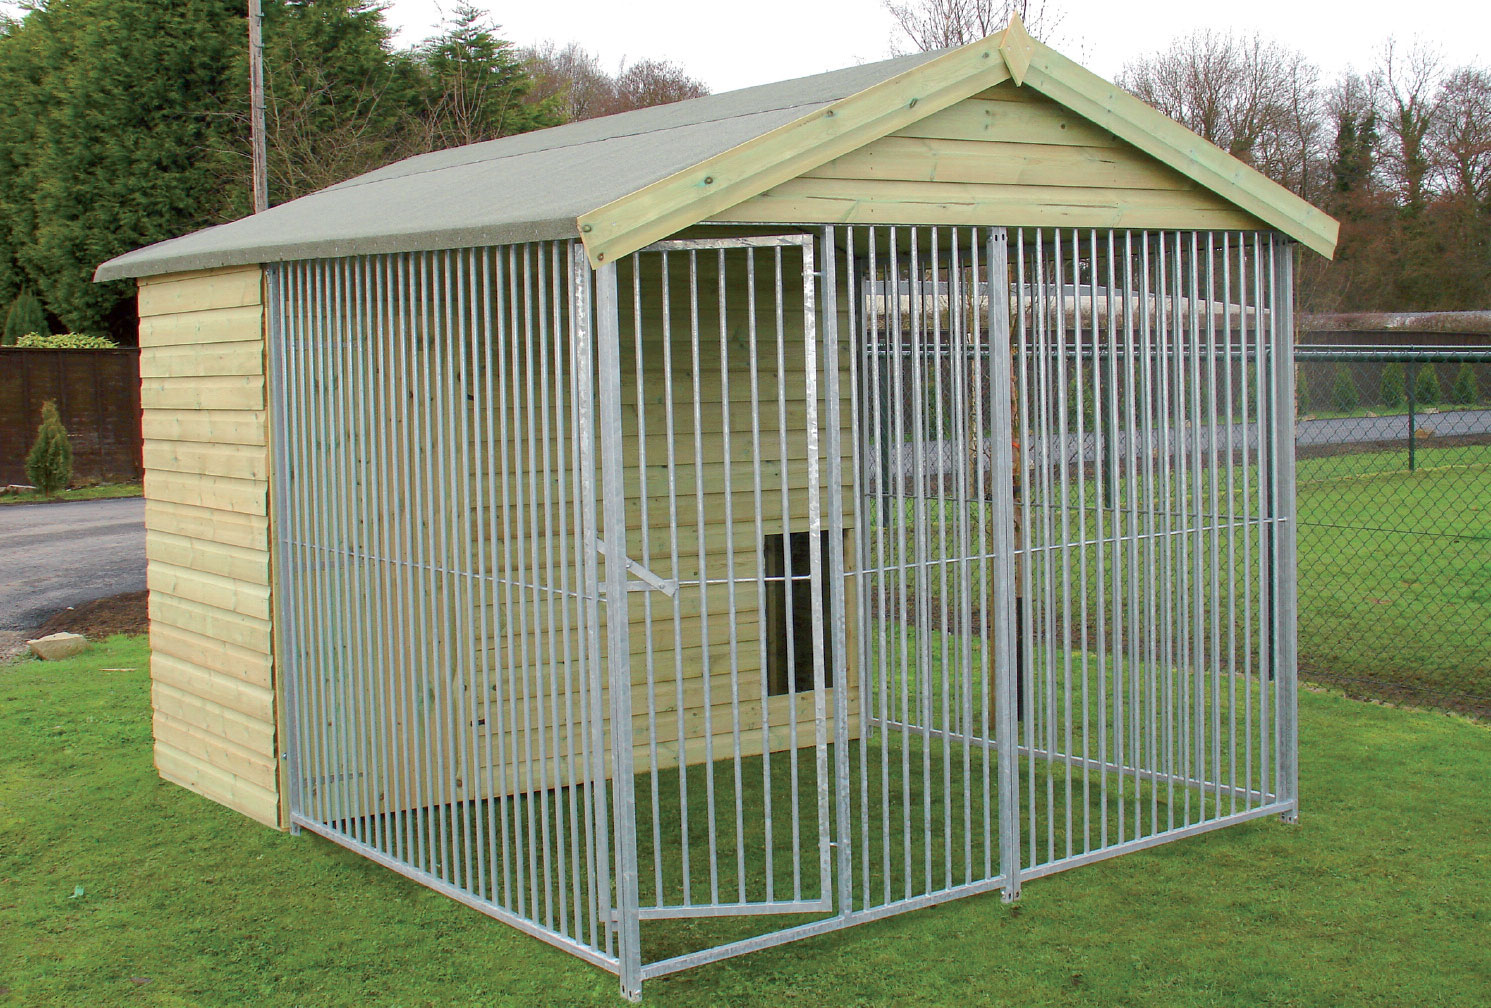 The Warmingham 10ft Wide x 10.6ft Deep Dog Kennel